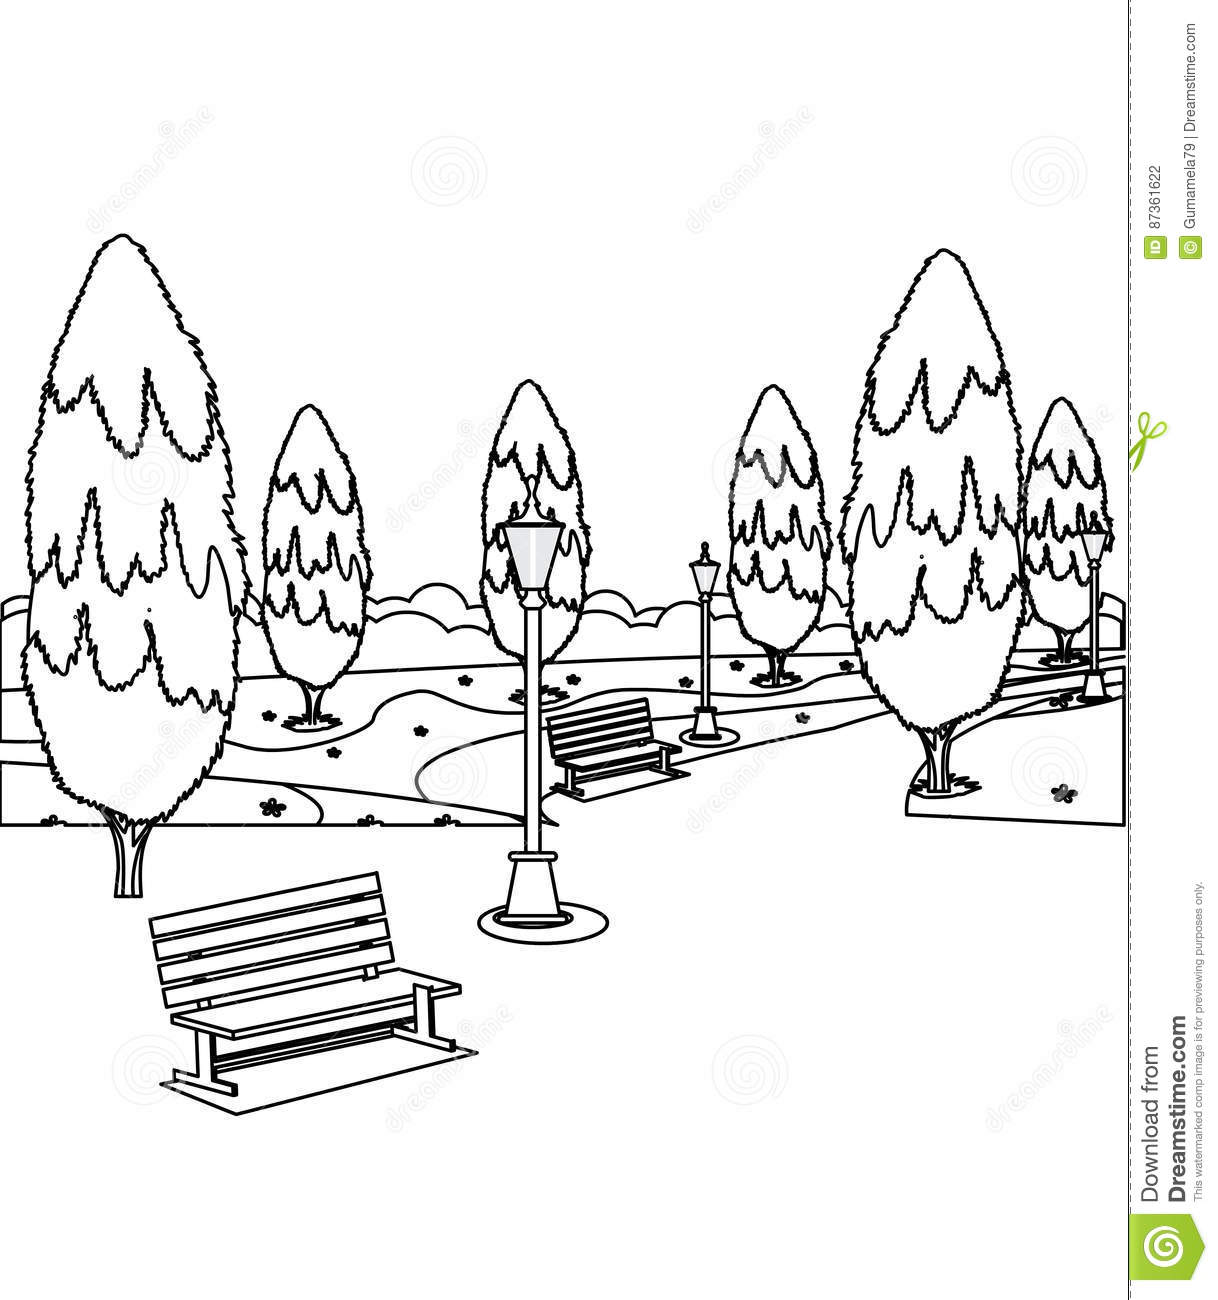 Park Bench Coloring Download Park Bench Coloring For Free